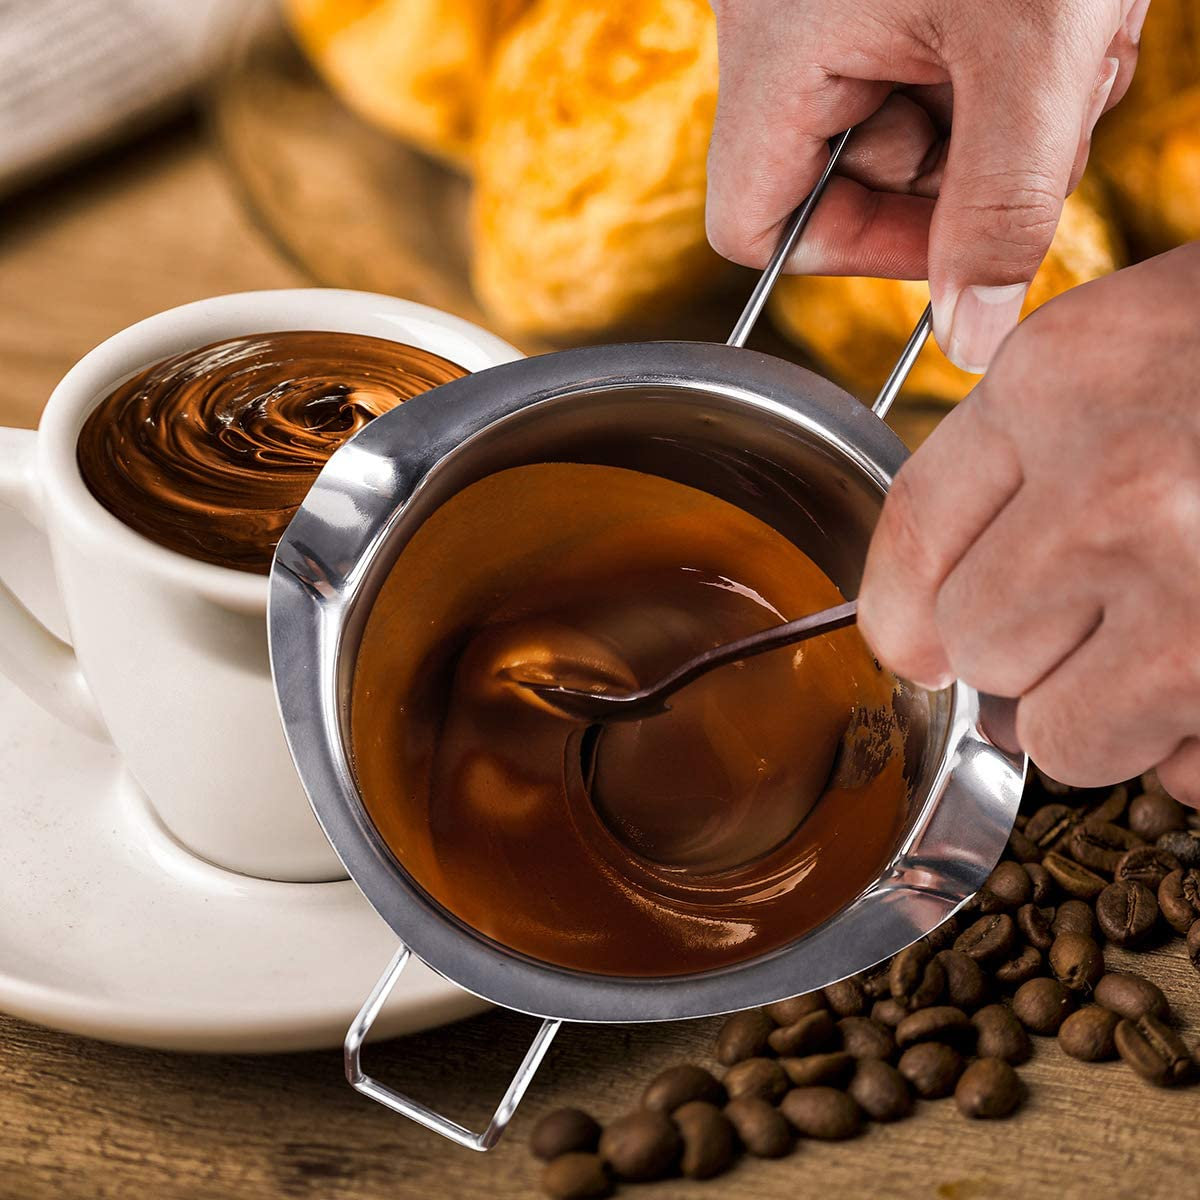 680ML Stainless Steel Double Boiler Pot,BOBIPRO 18//8 Steel Double Boiler with Handle for Chocolate Melting,Candy Candle Making